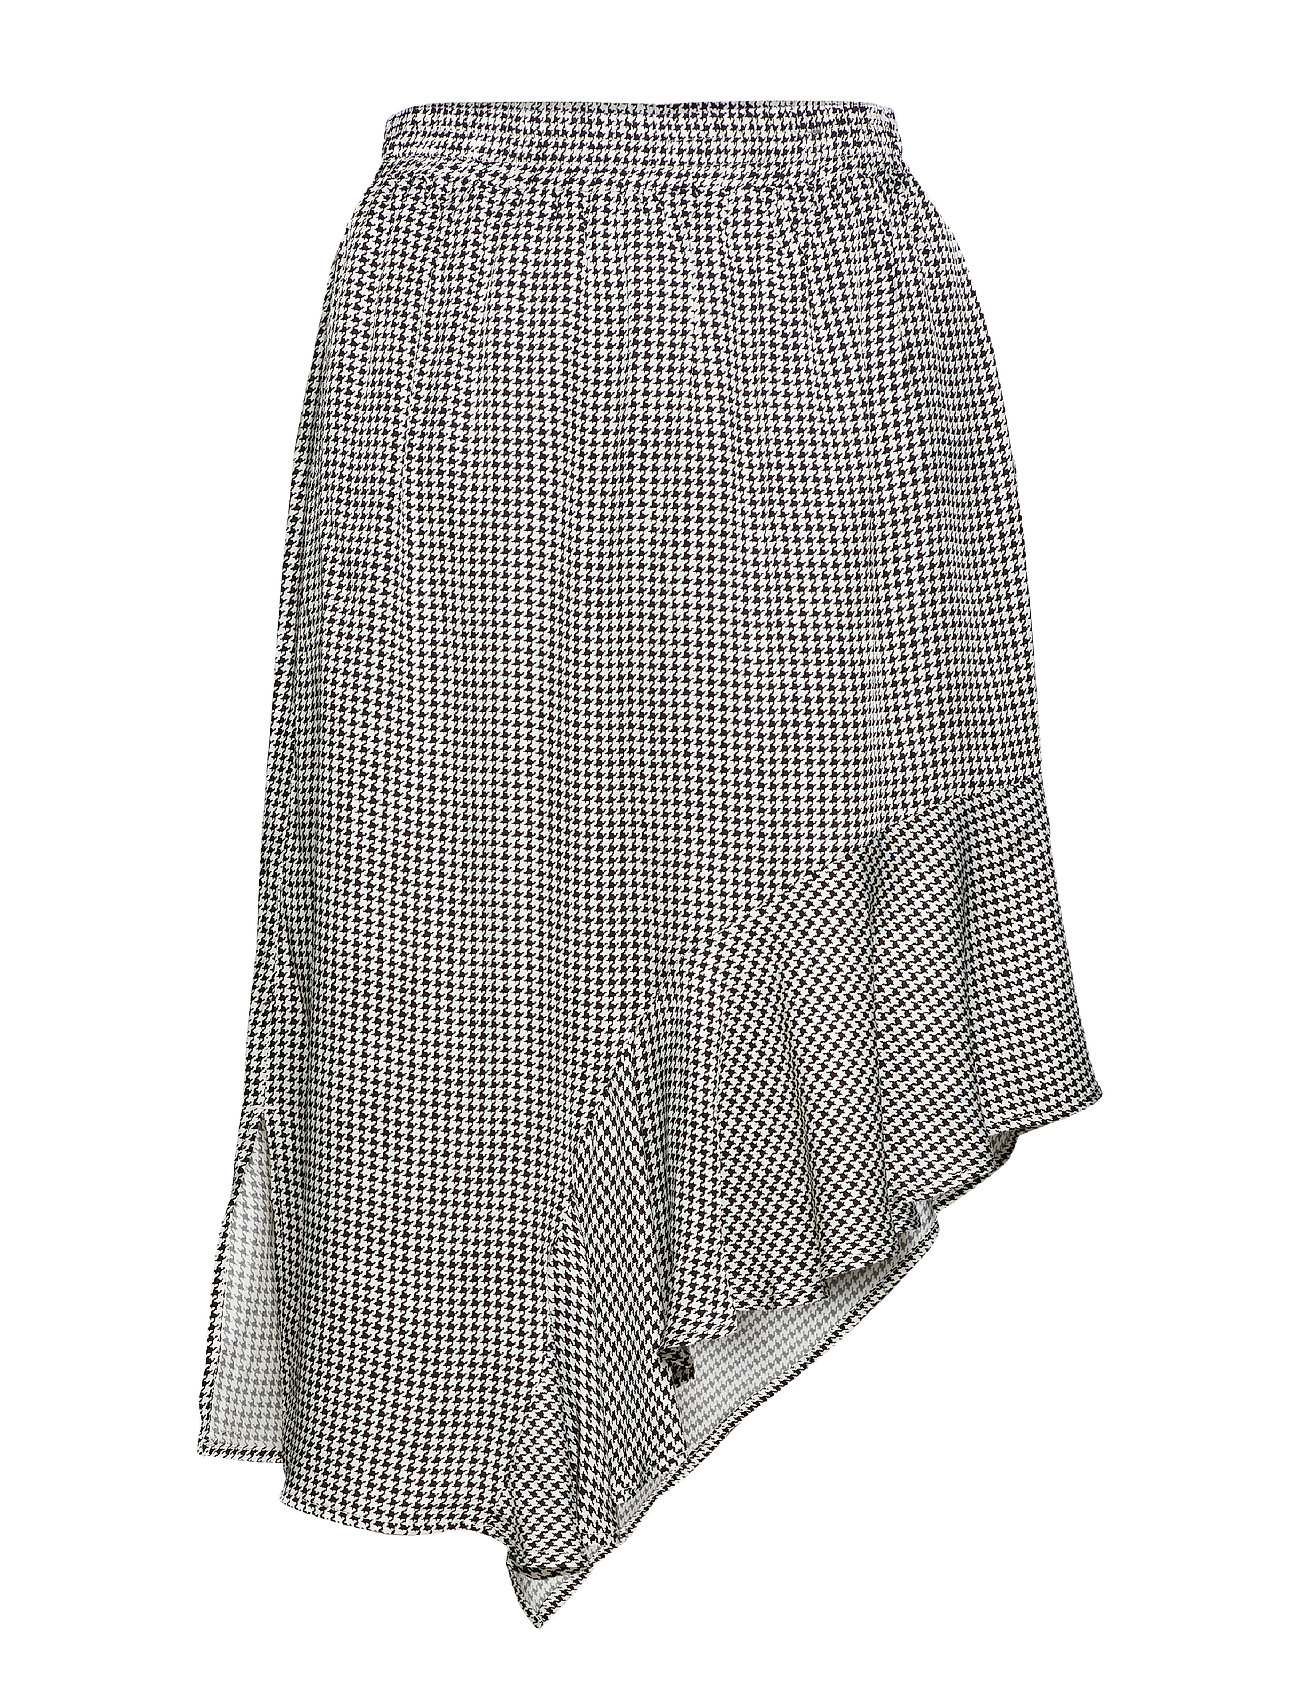 DESIGNERS, REMIX Jael Skirt - BLACK/WHITE CHECK